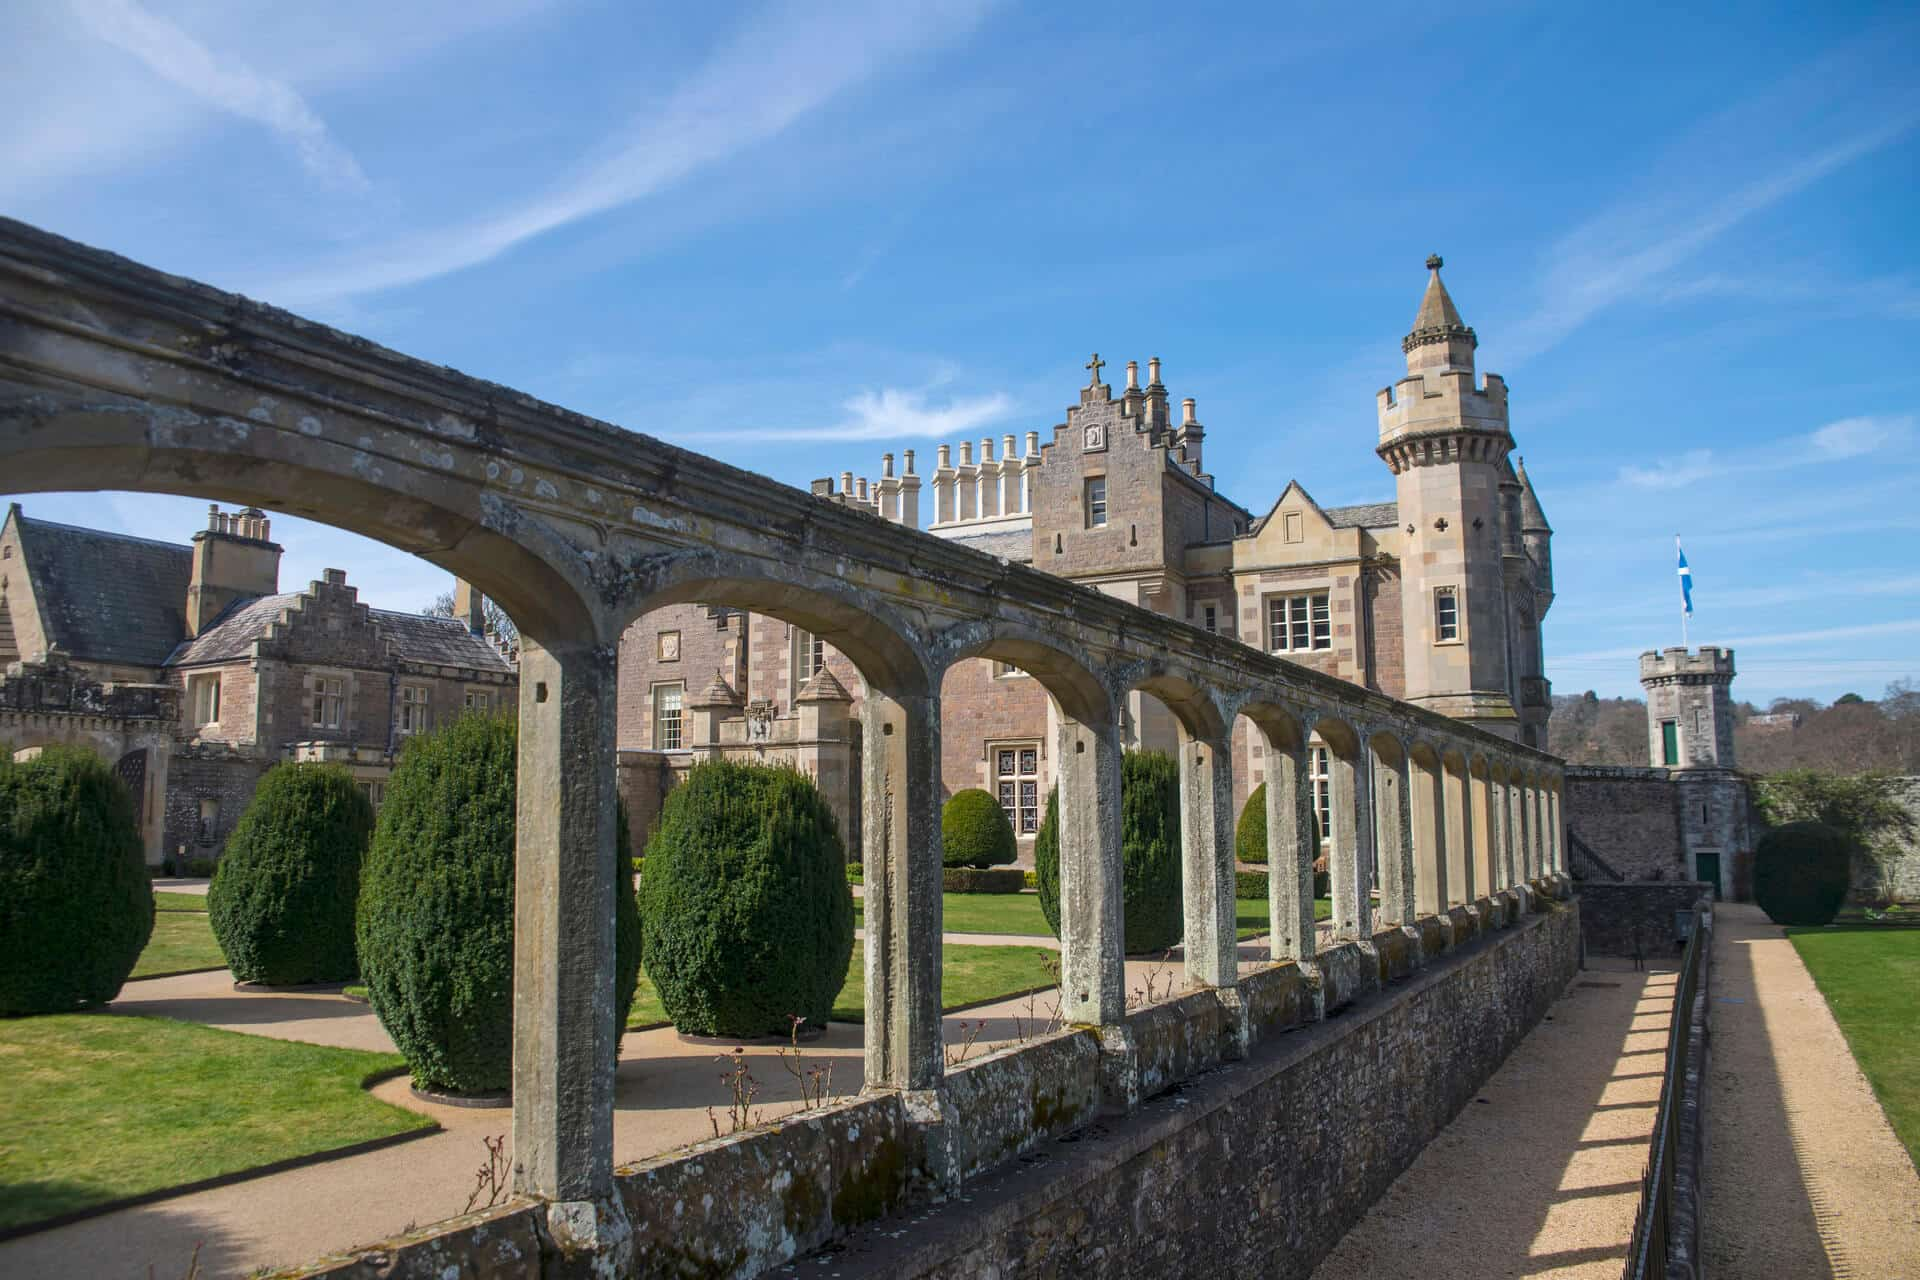 Abbotsford House, Sir Walter scott's home between Selkirk and Melrose